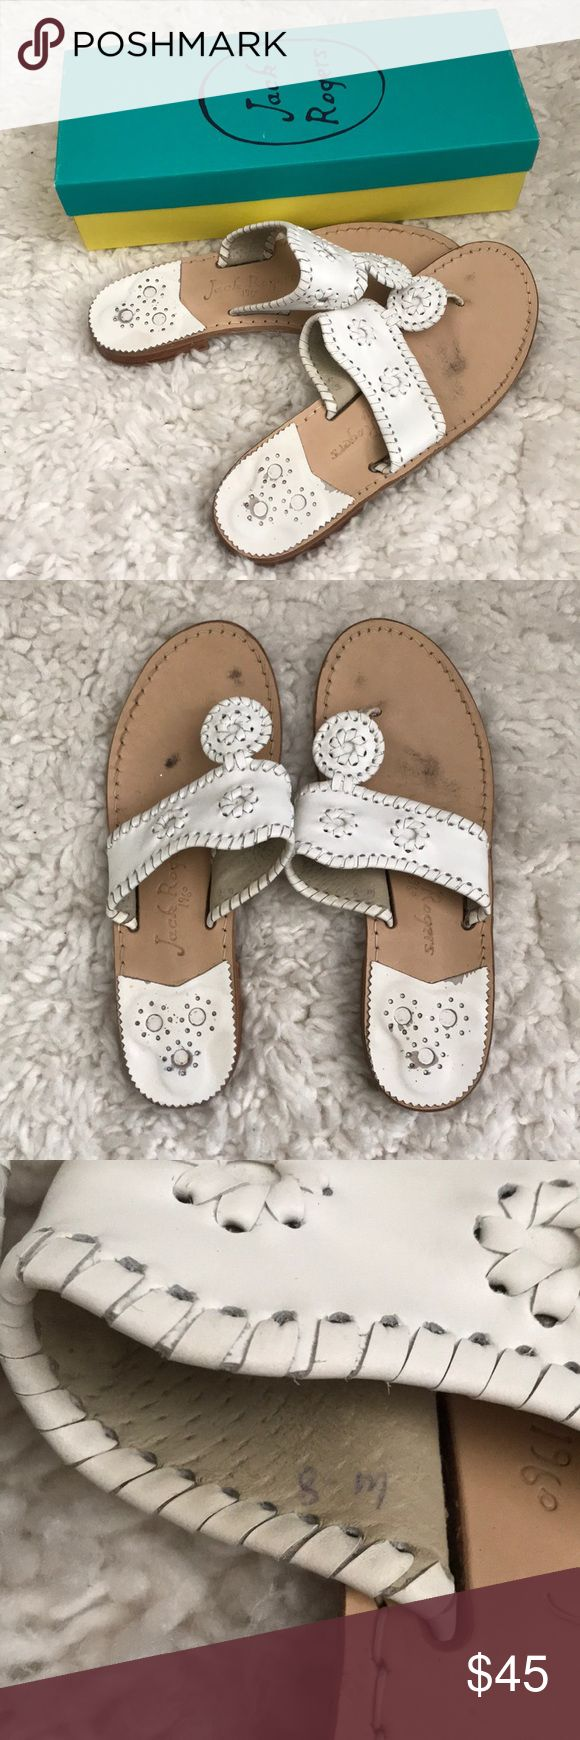 [Jack Rogers] White palm beach sandals flip flops These are worn and broken in but in great condition. They do come with the box. They are size 8-M.  *NO modeling* Jack Rogers Shoes Sandals